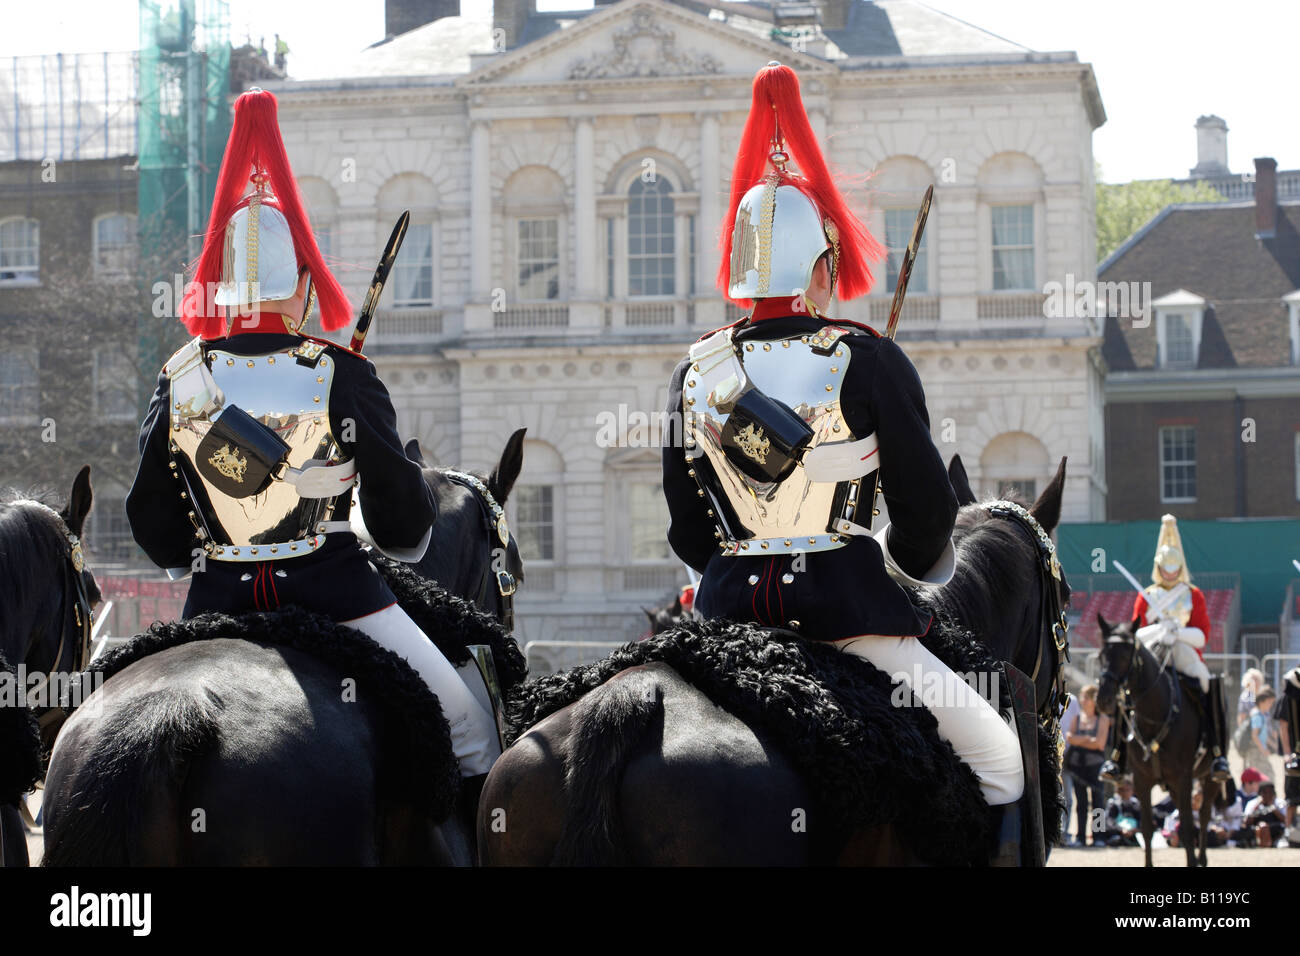 Blues and Royals on horseback Horse Guards Parade London England - Stock Image